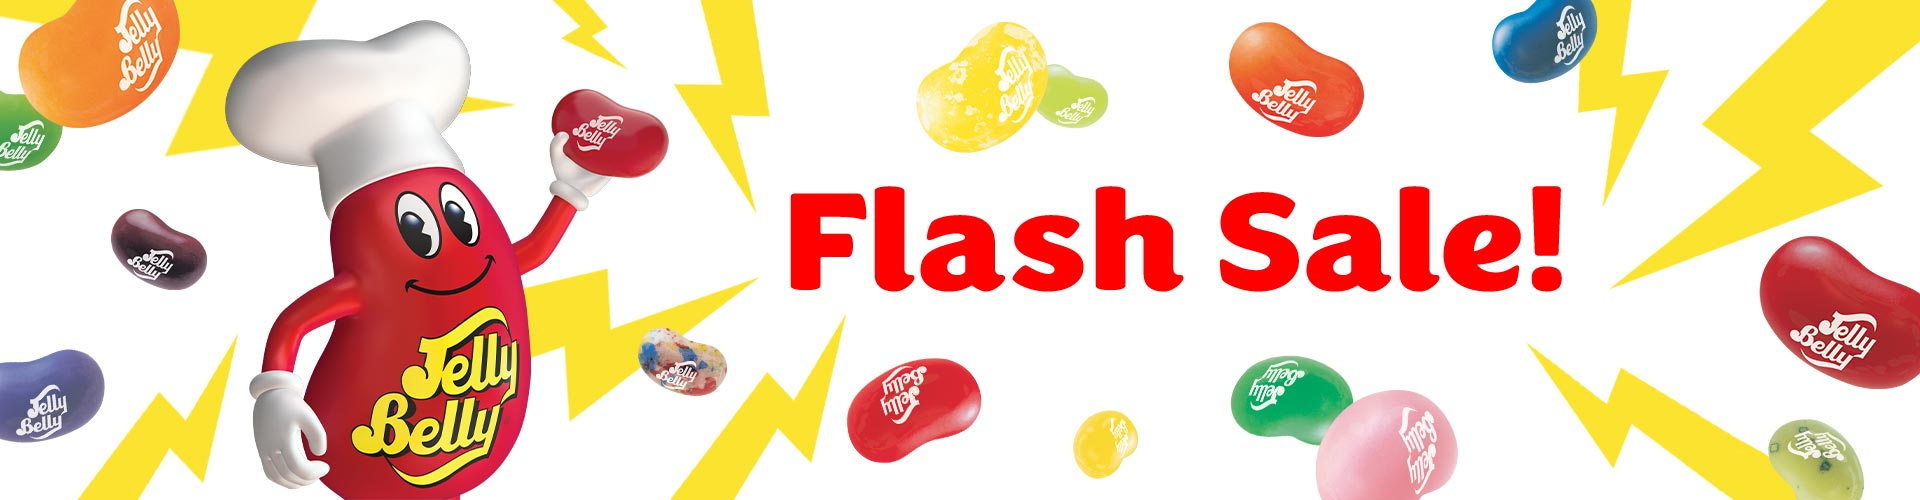 Jelly Belly Flash Sale